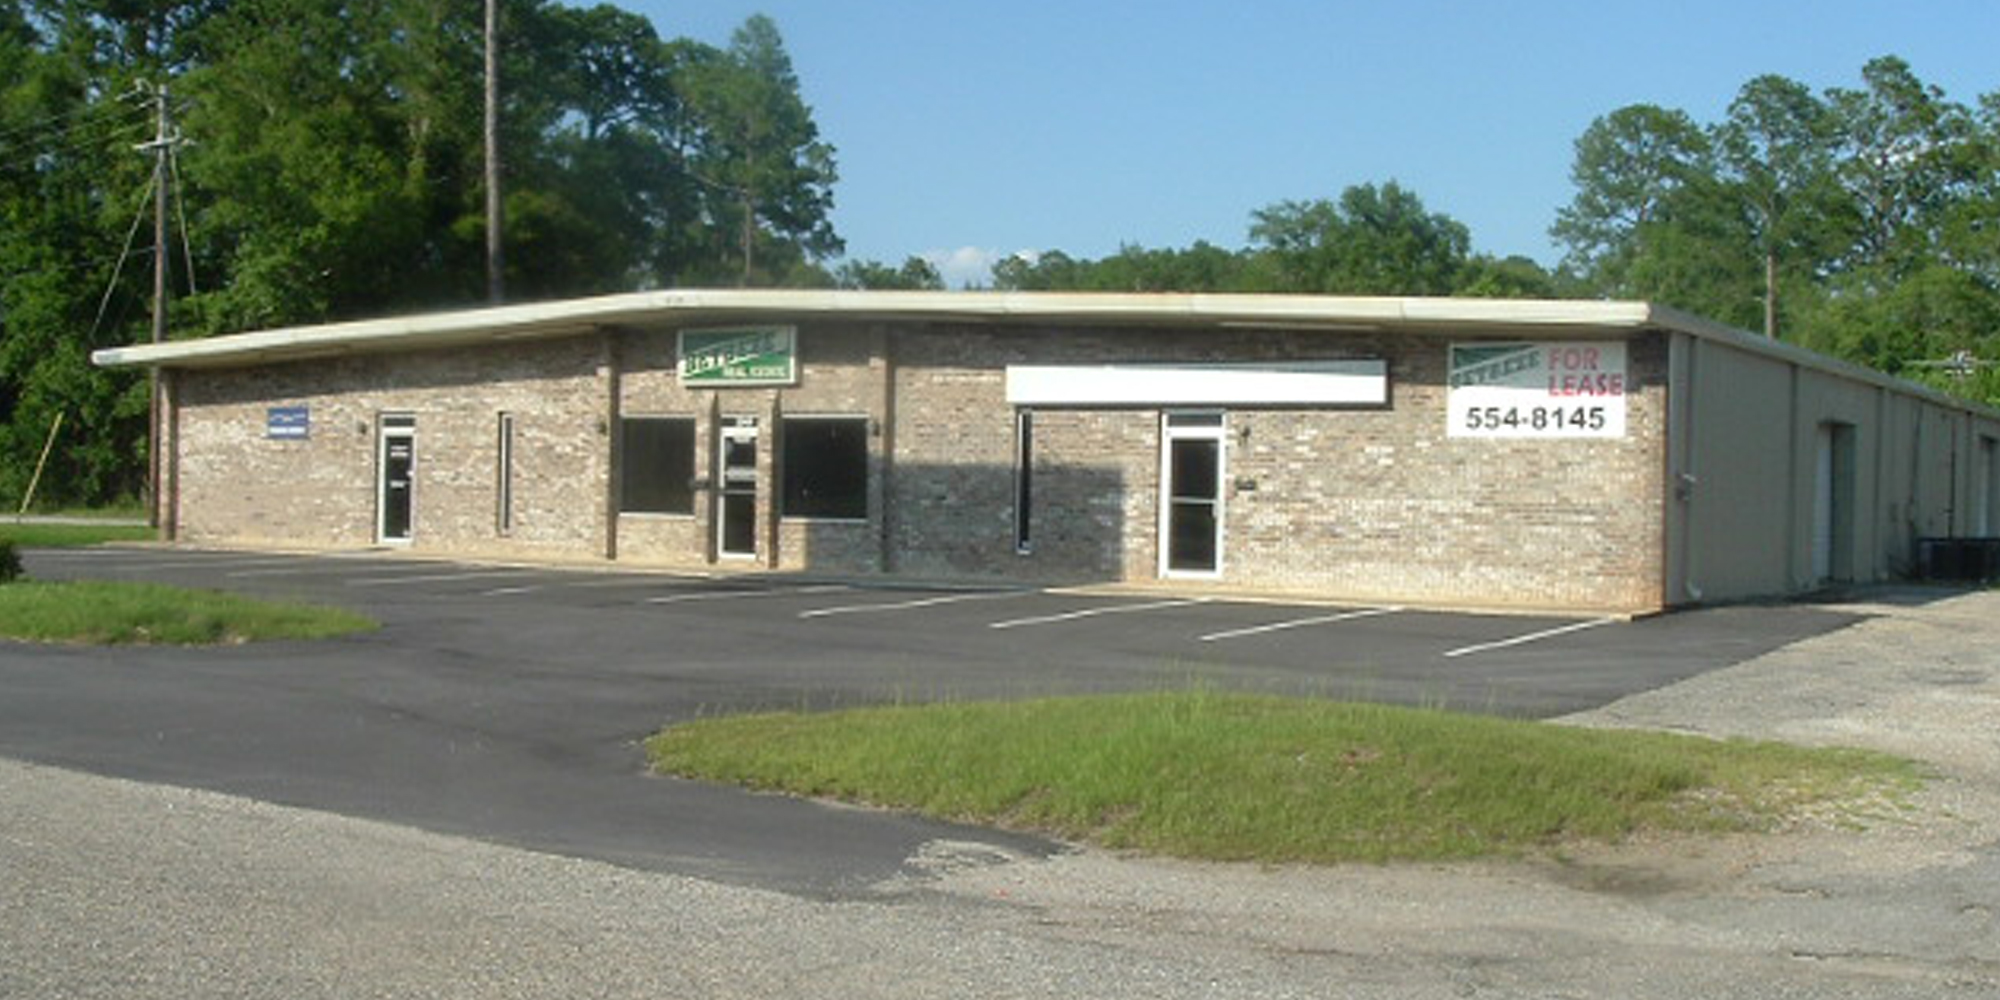 3345 Halls Mill Road - WAREHOUSEA 14,000± square foot office/warehouse located at the intersection of Interstate 65 and Halls Mill Road. Currently there is a 3,150± square foot office/warehouse available for $1,250 per month, with a fully air conditioned warehouse.Lease Price: $1,250 Per MonthTenants: Wrico Signs, Betbeze Realty Company, Camellia Resurfacing